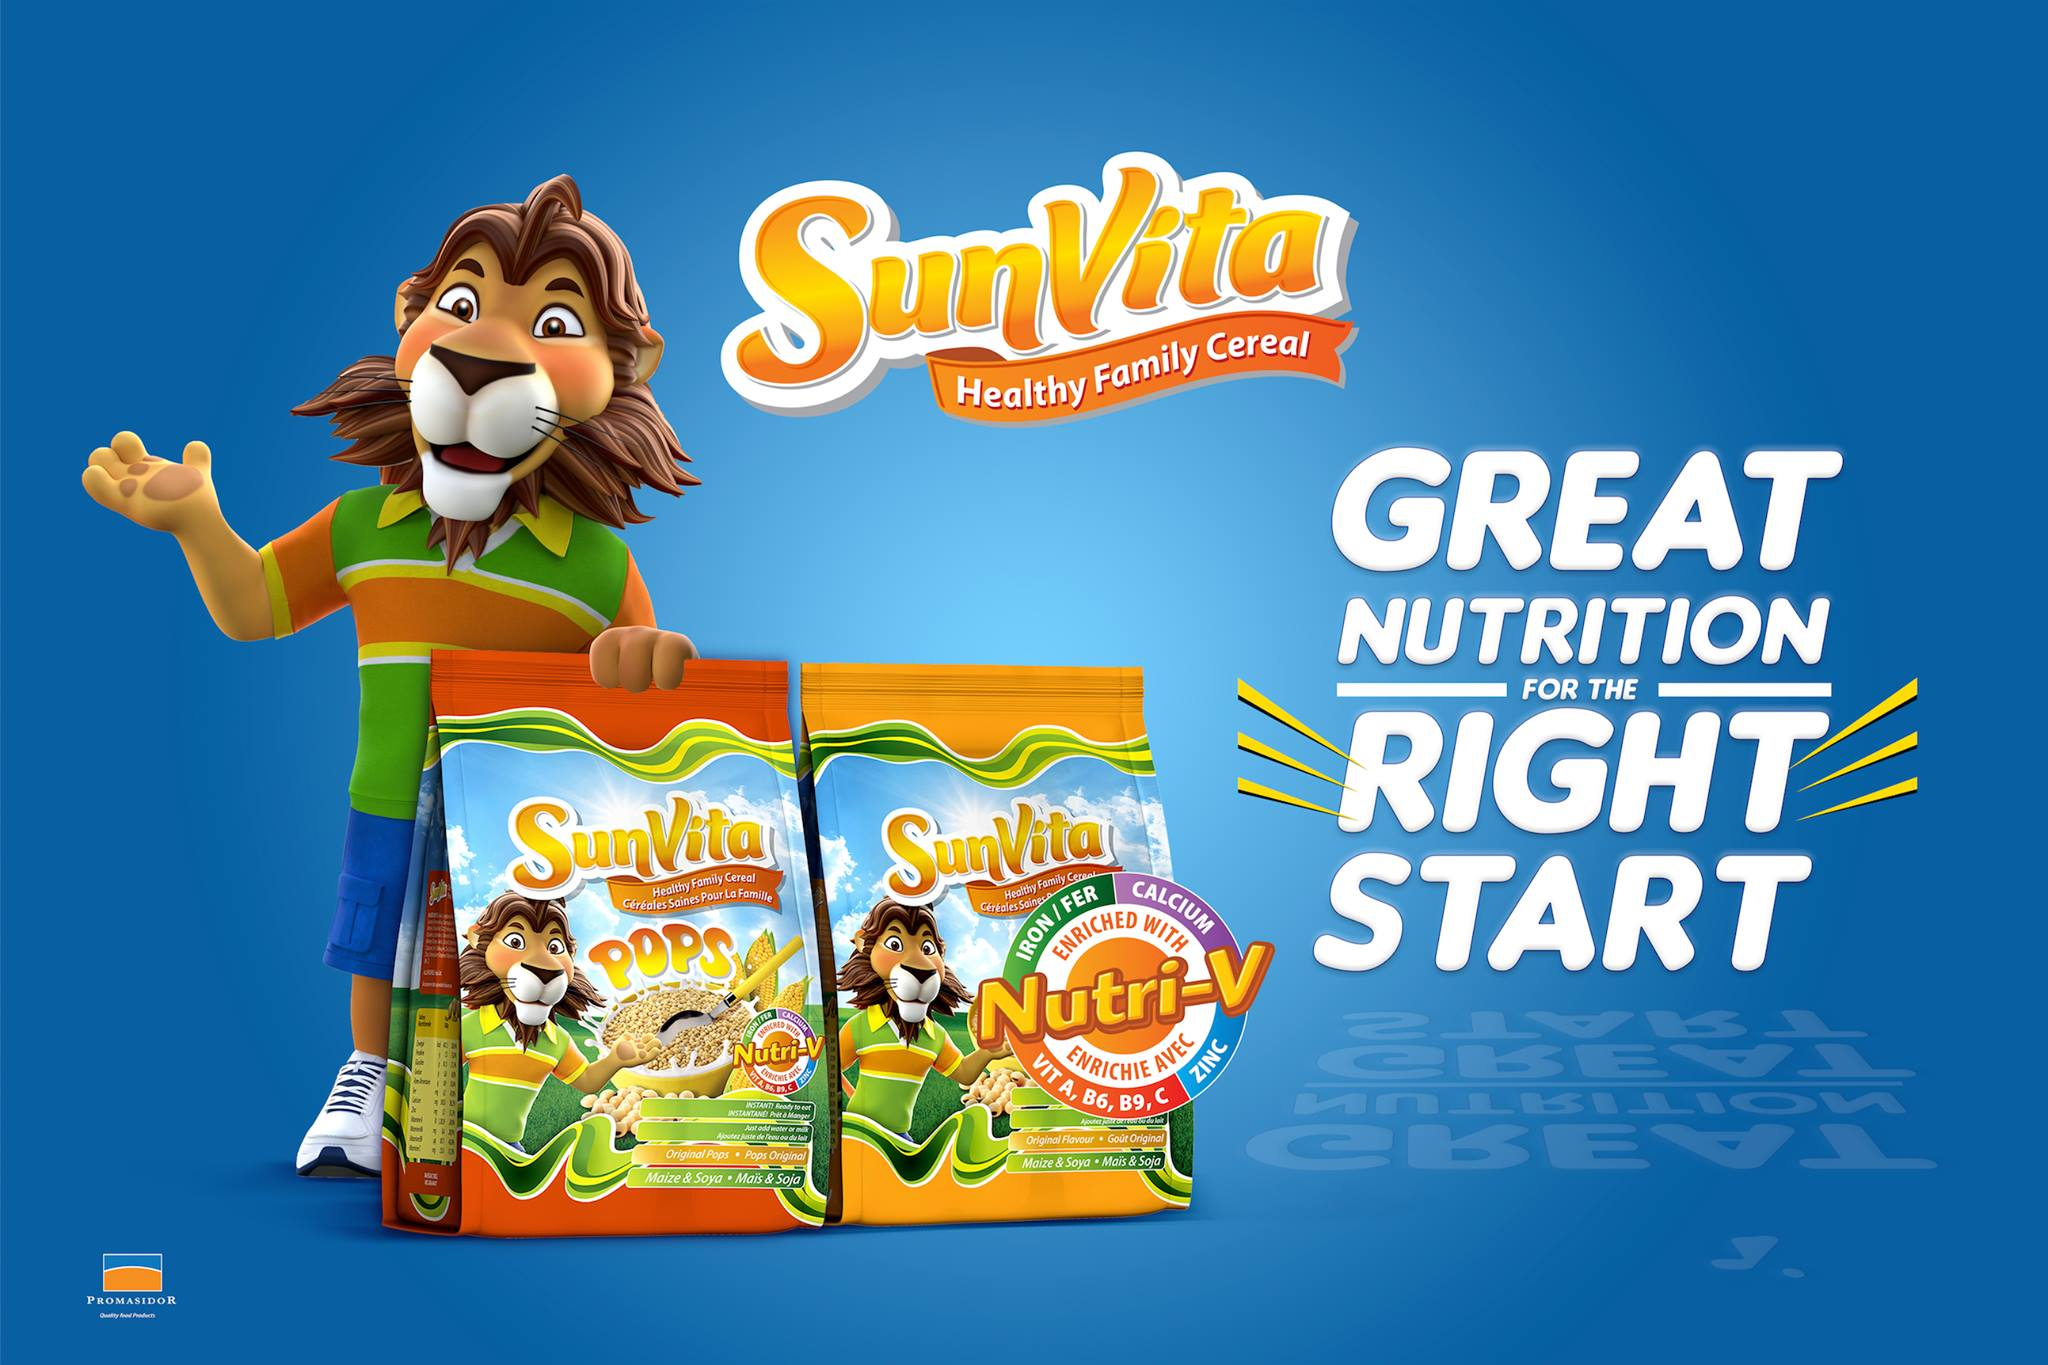 SunVita Cereal, now consumers most sought after brand - Promasidor Boss - Brand Spur